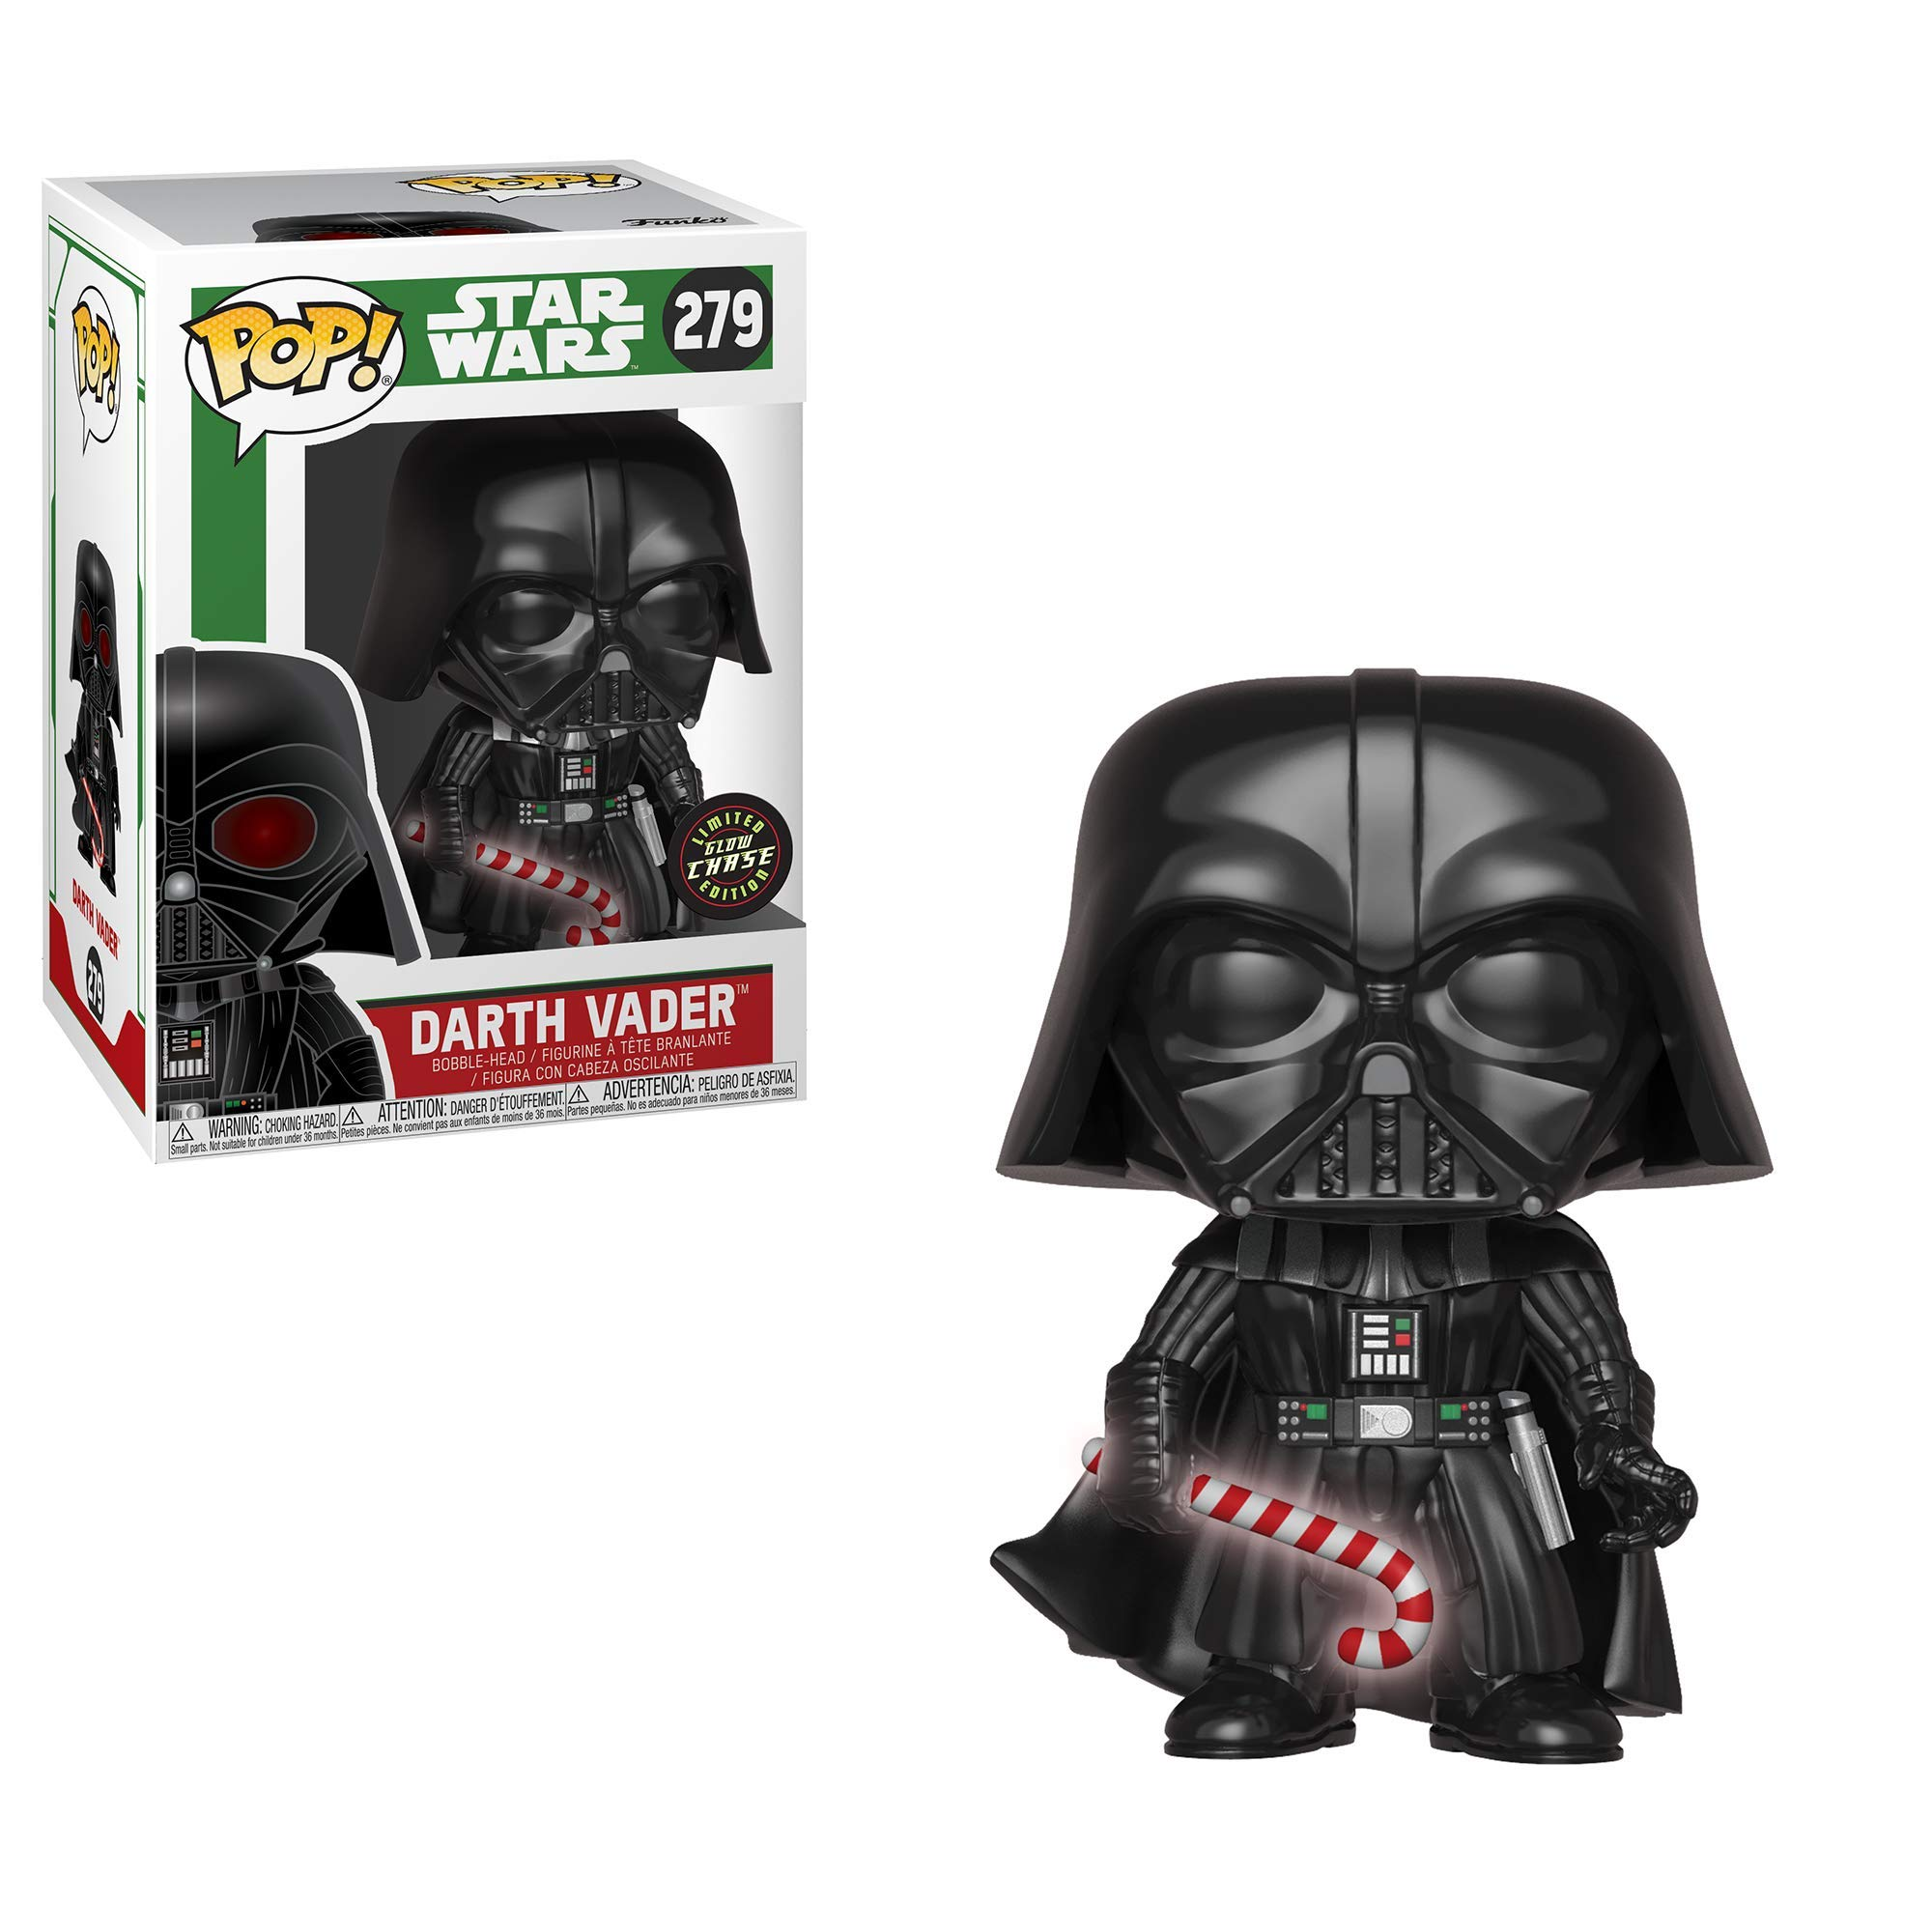 Funko Pop Star Wars: Holiday - Darth Vader with Candy Cane (Styles May Vary) Collectible Figure, Multicolor by Funko (Image #3)